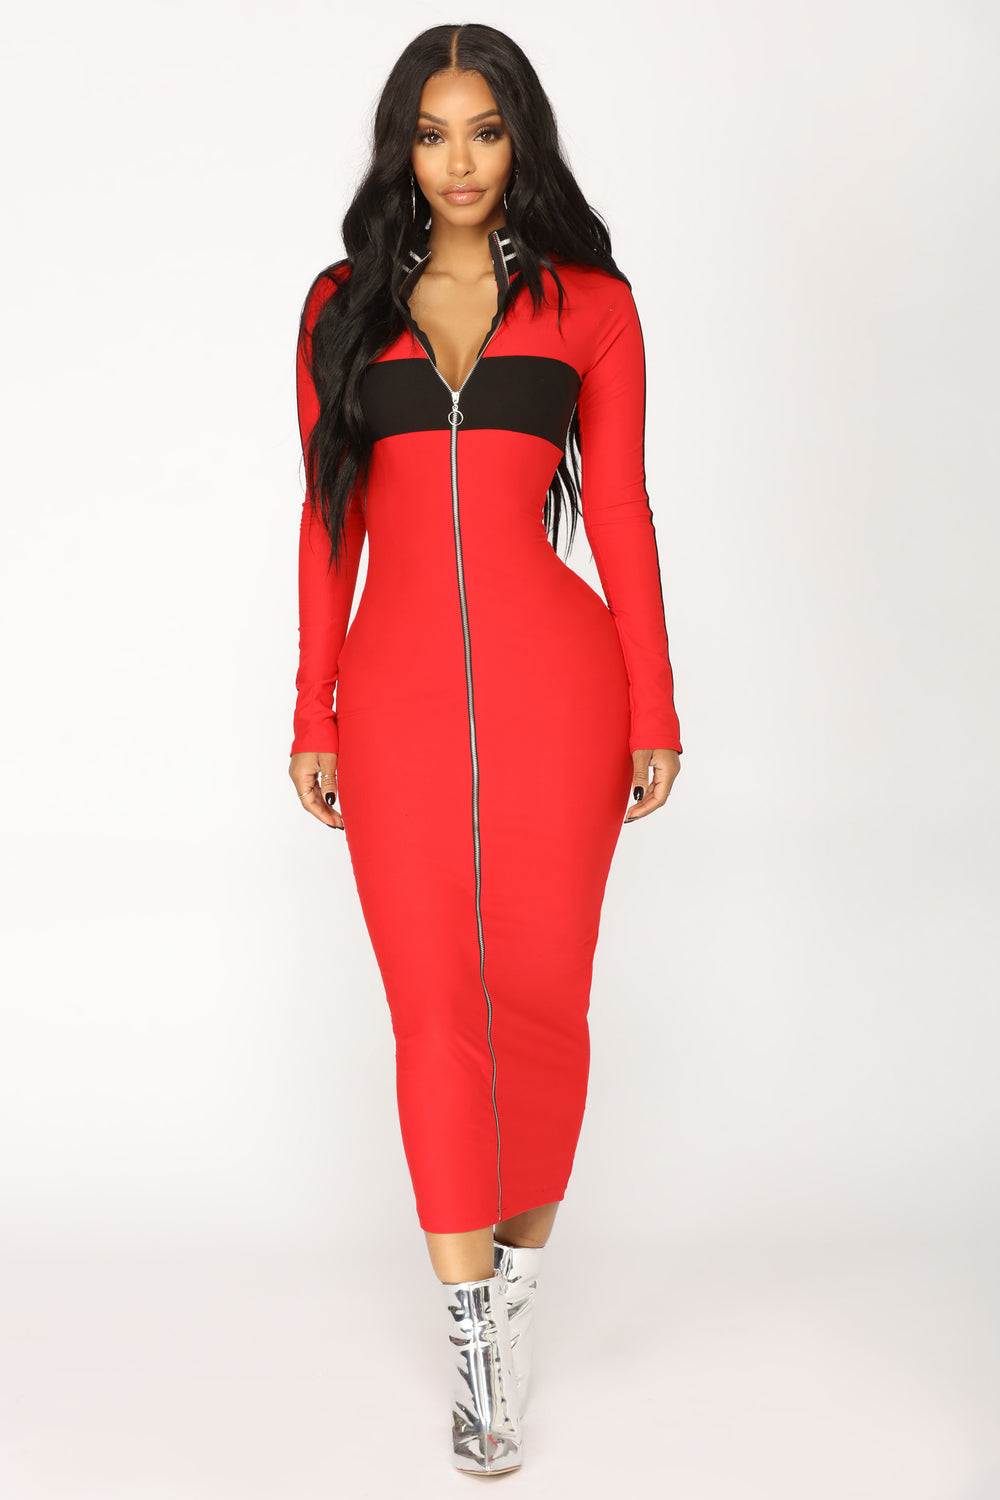 To The Finish Zipper Dress - Red/Black